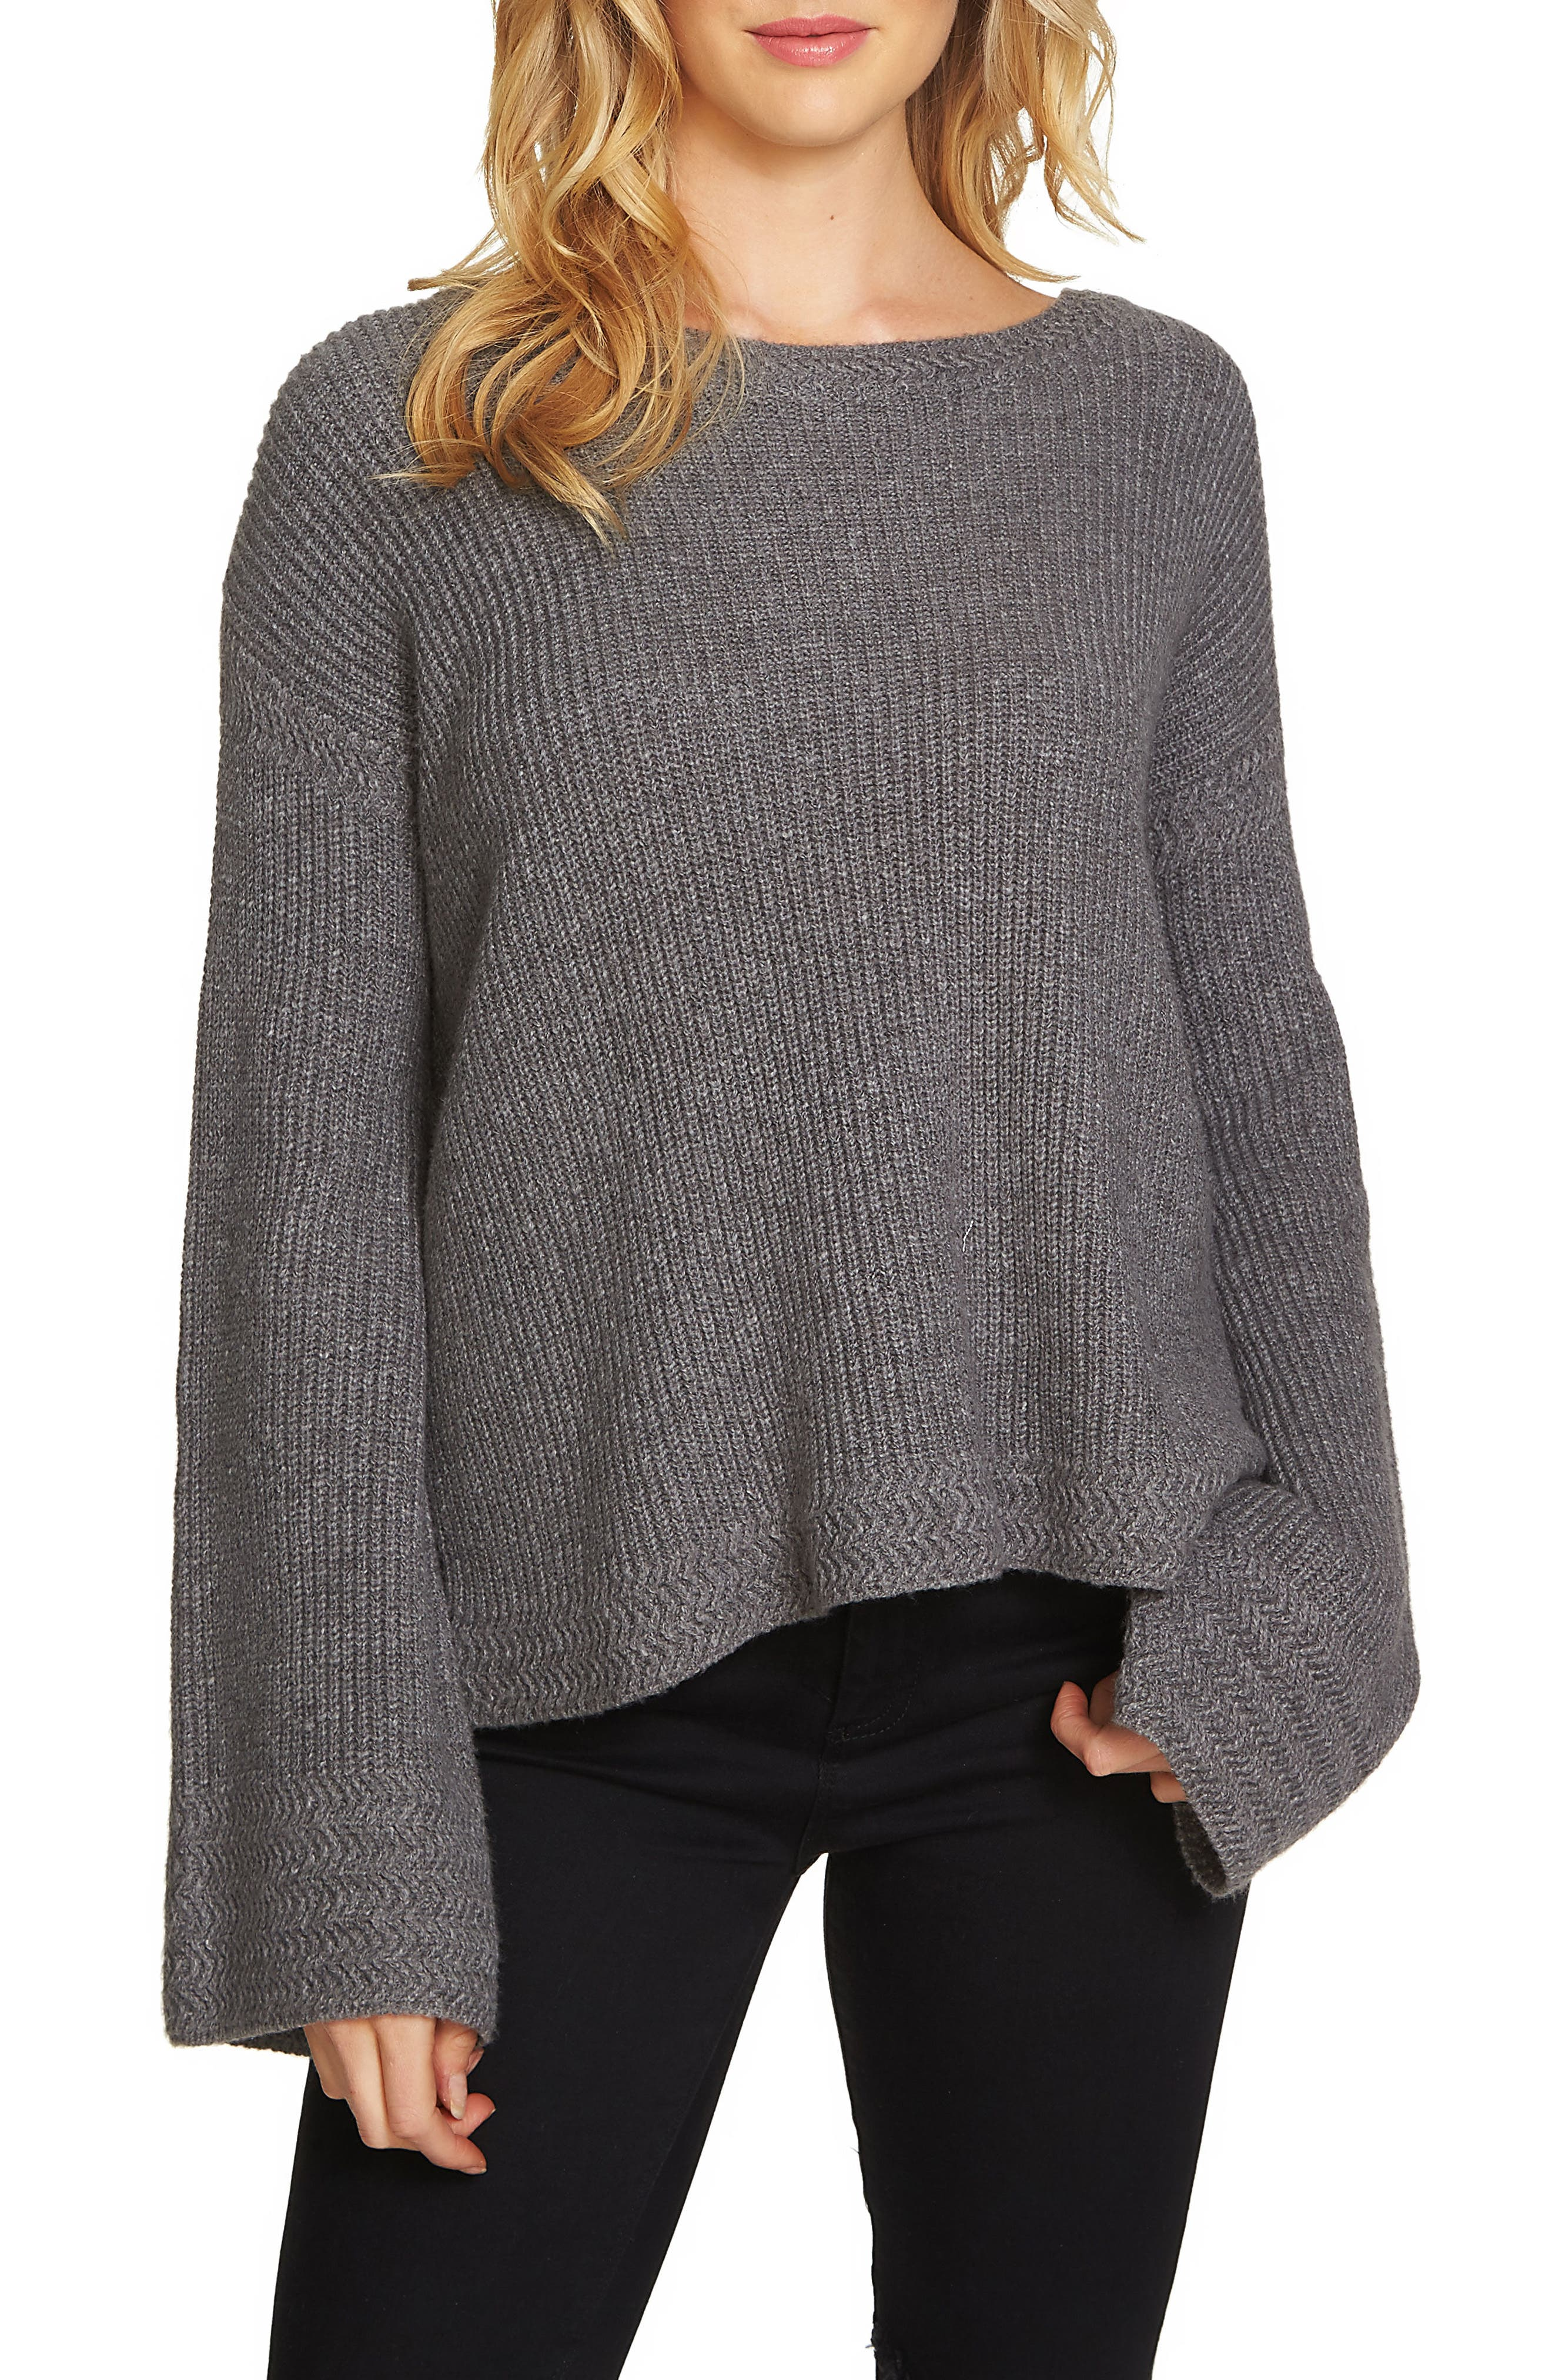 Main Image - 1.STATE Bell Sleeve Sweater